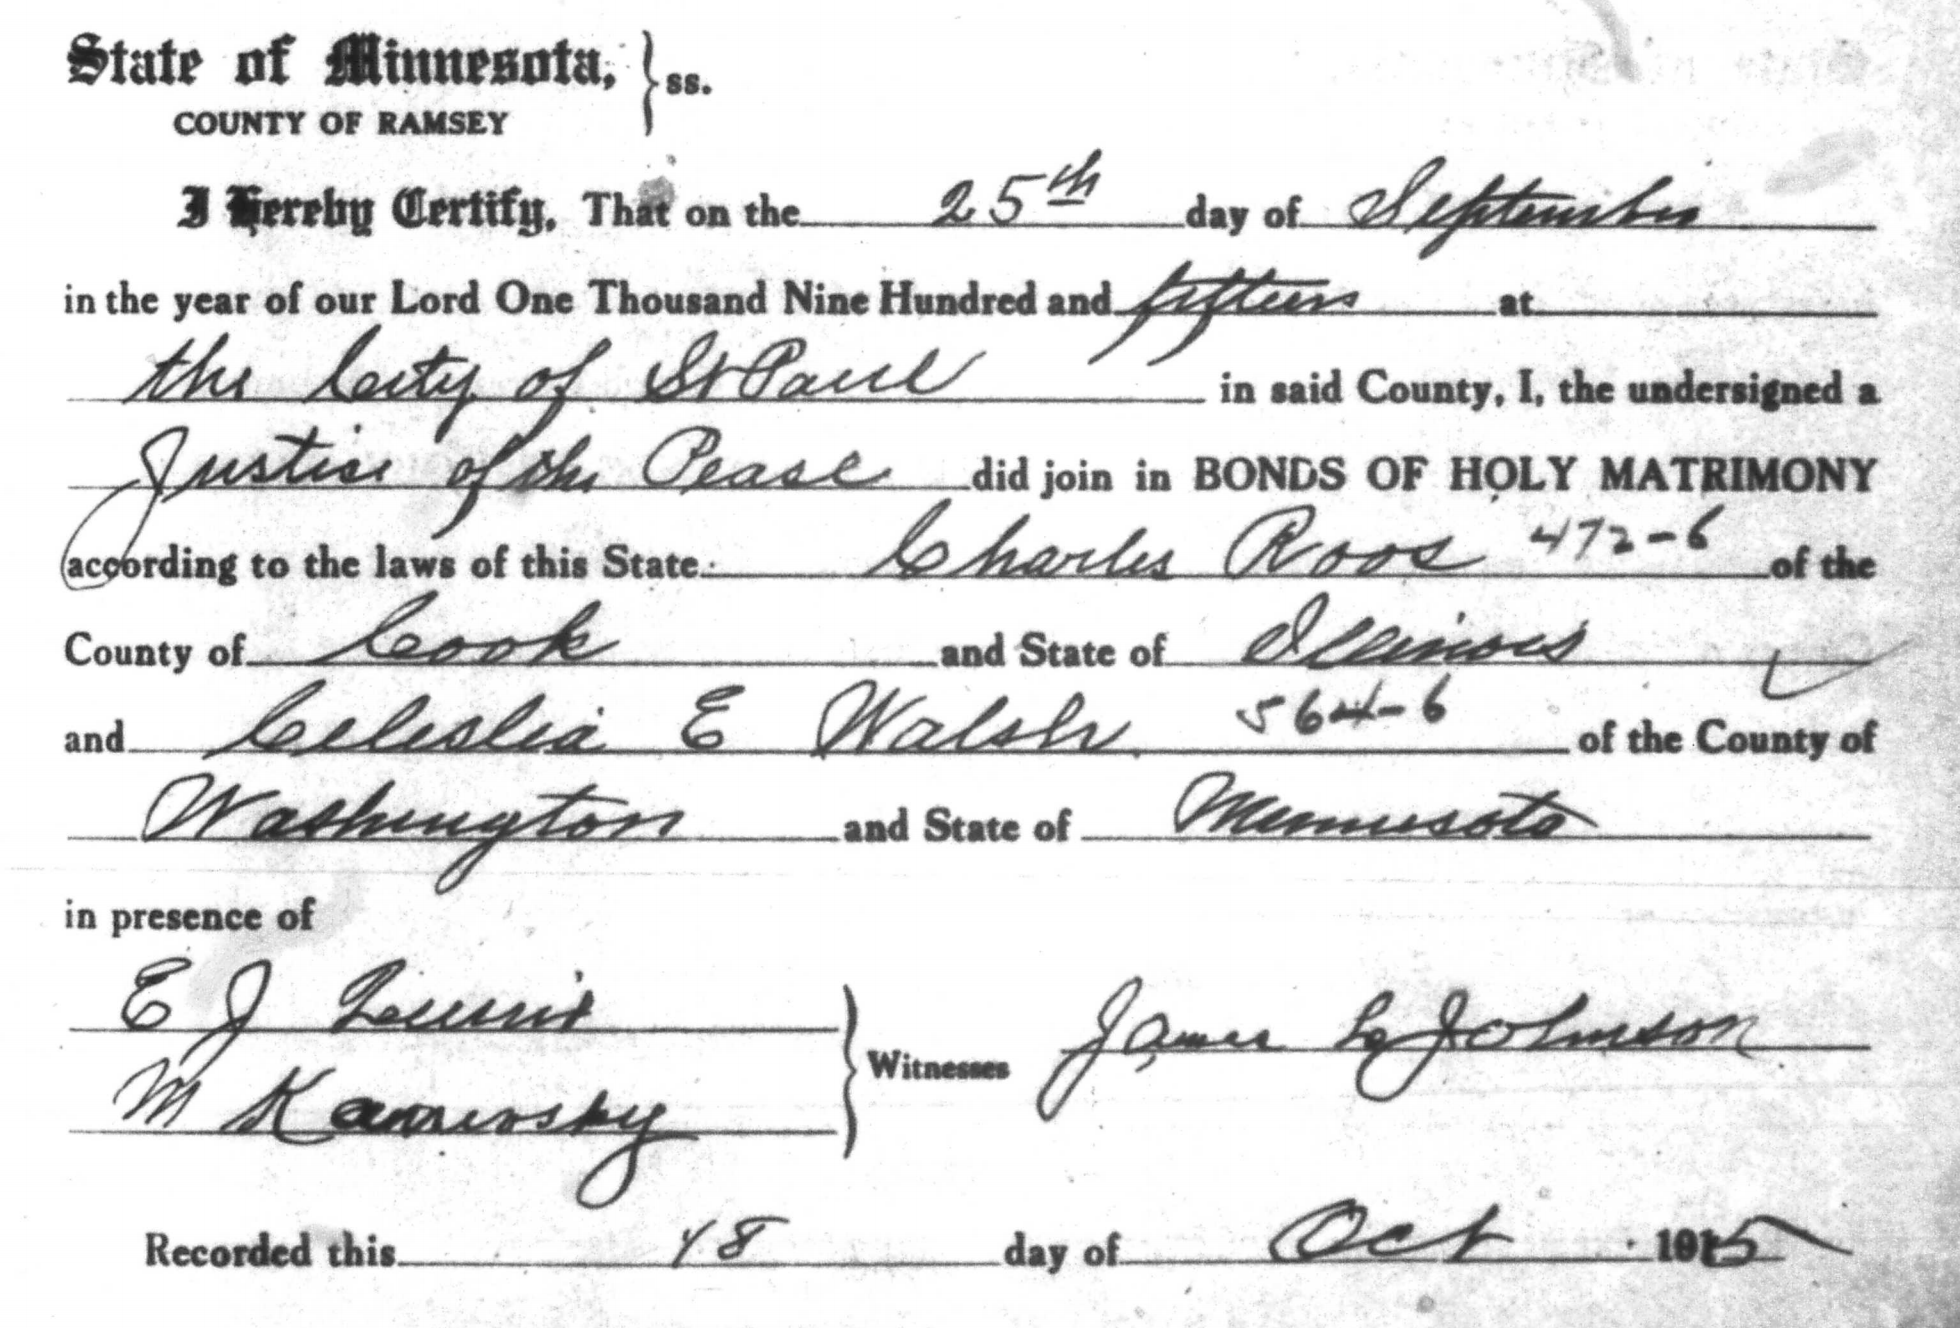 Marriage Certificate Charles Roos, Celeslia E Walsh.